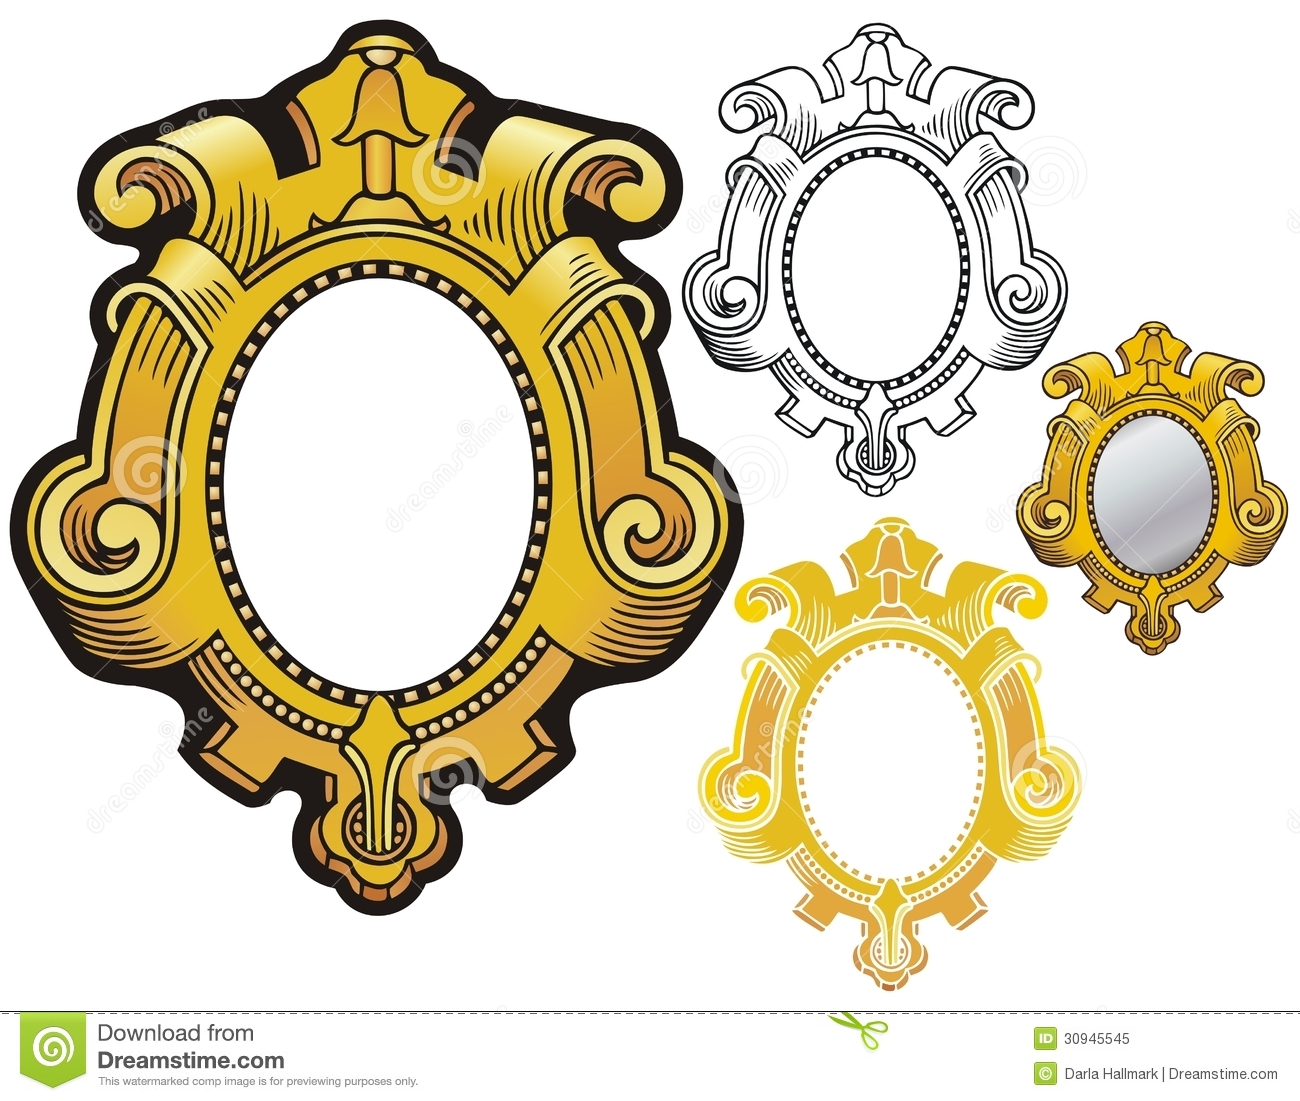 Ornate renaissance style border like a carved, gilded mirror frame.